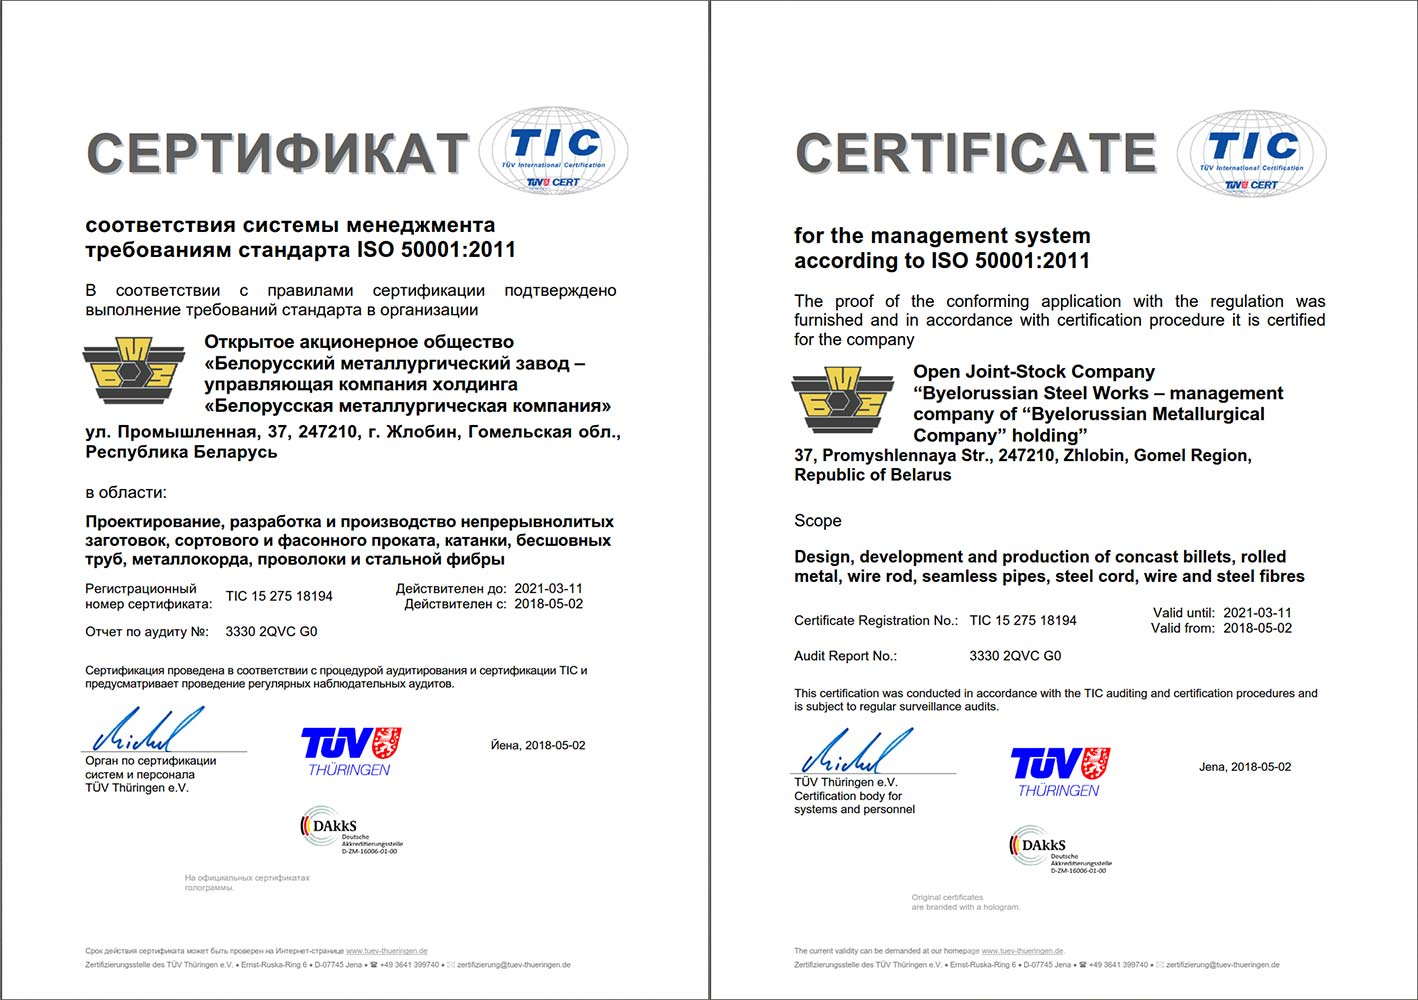 Conformity Certificate № BY/ 112 05.01. 002 00100 for the quality management system applied to the design, development and production of concast billets, rolled material, wire rod, seamless pipes, steel cord, wire and steel fibres in accordance with the requirements of STB ISO 9001:2015